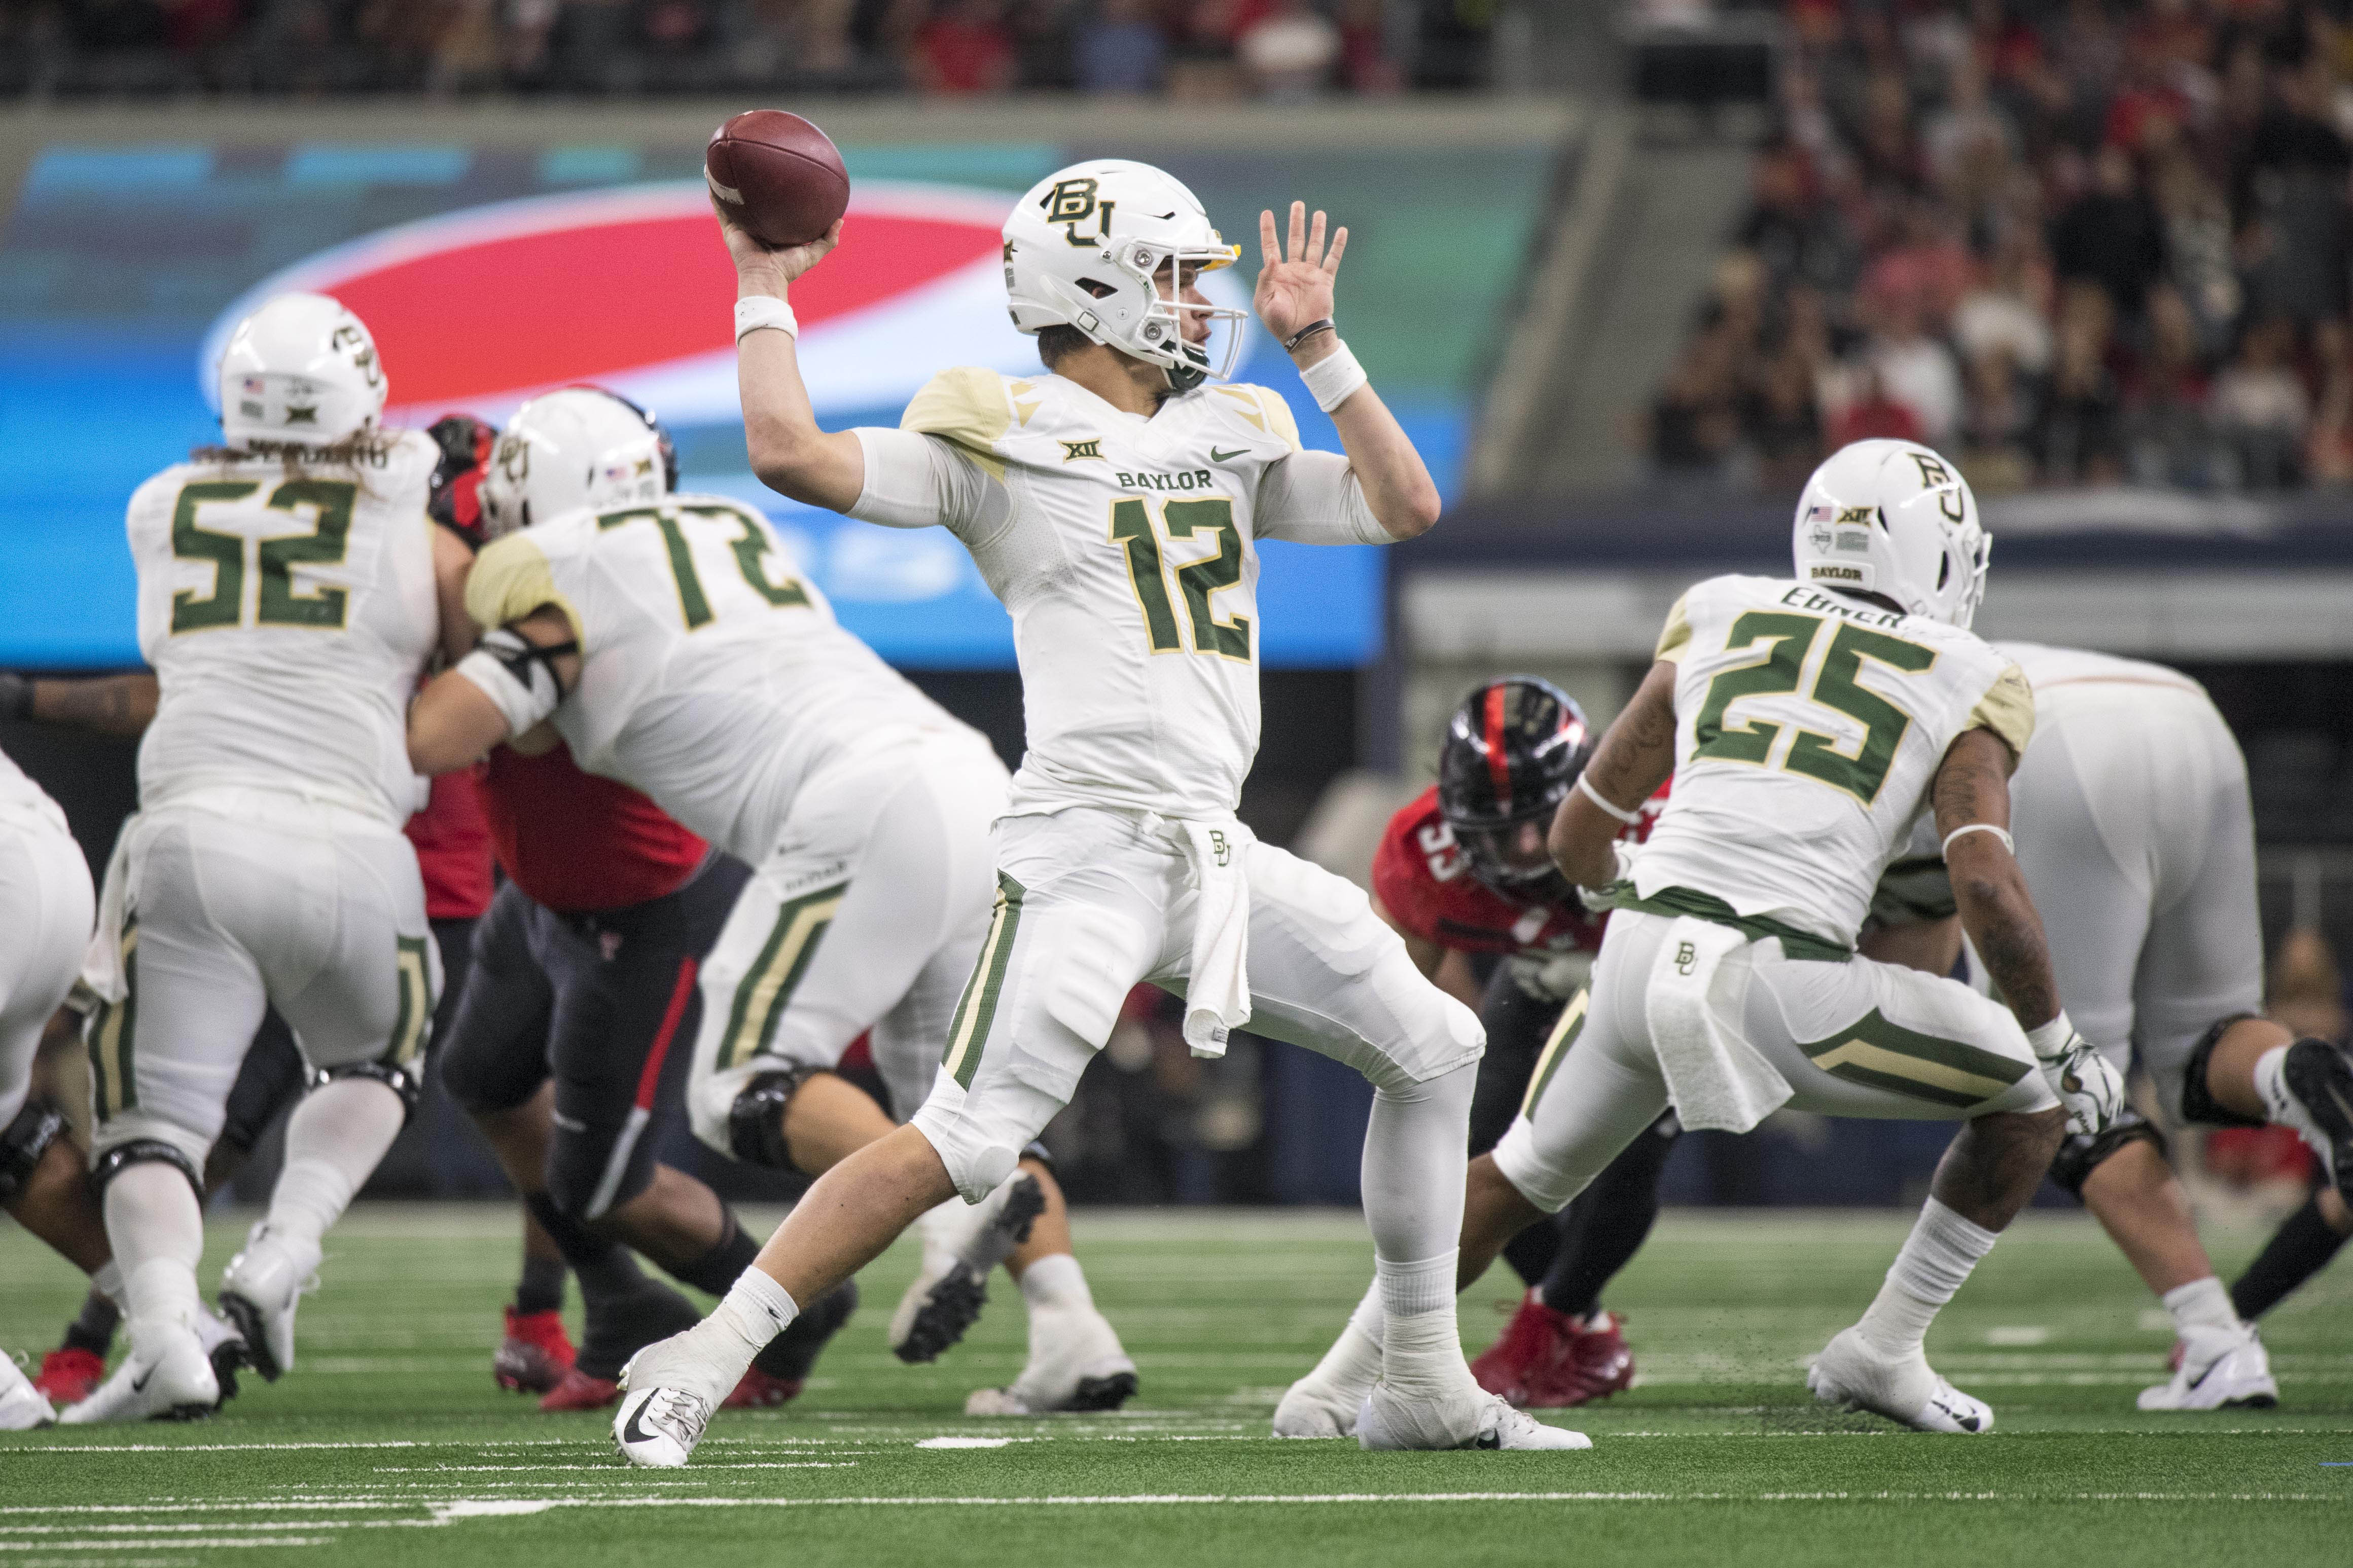 Brewer clear No. 1 QB after Baylor goes from 1 to 7 wins